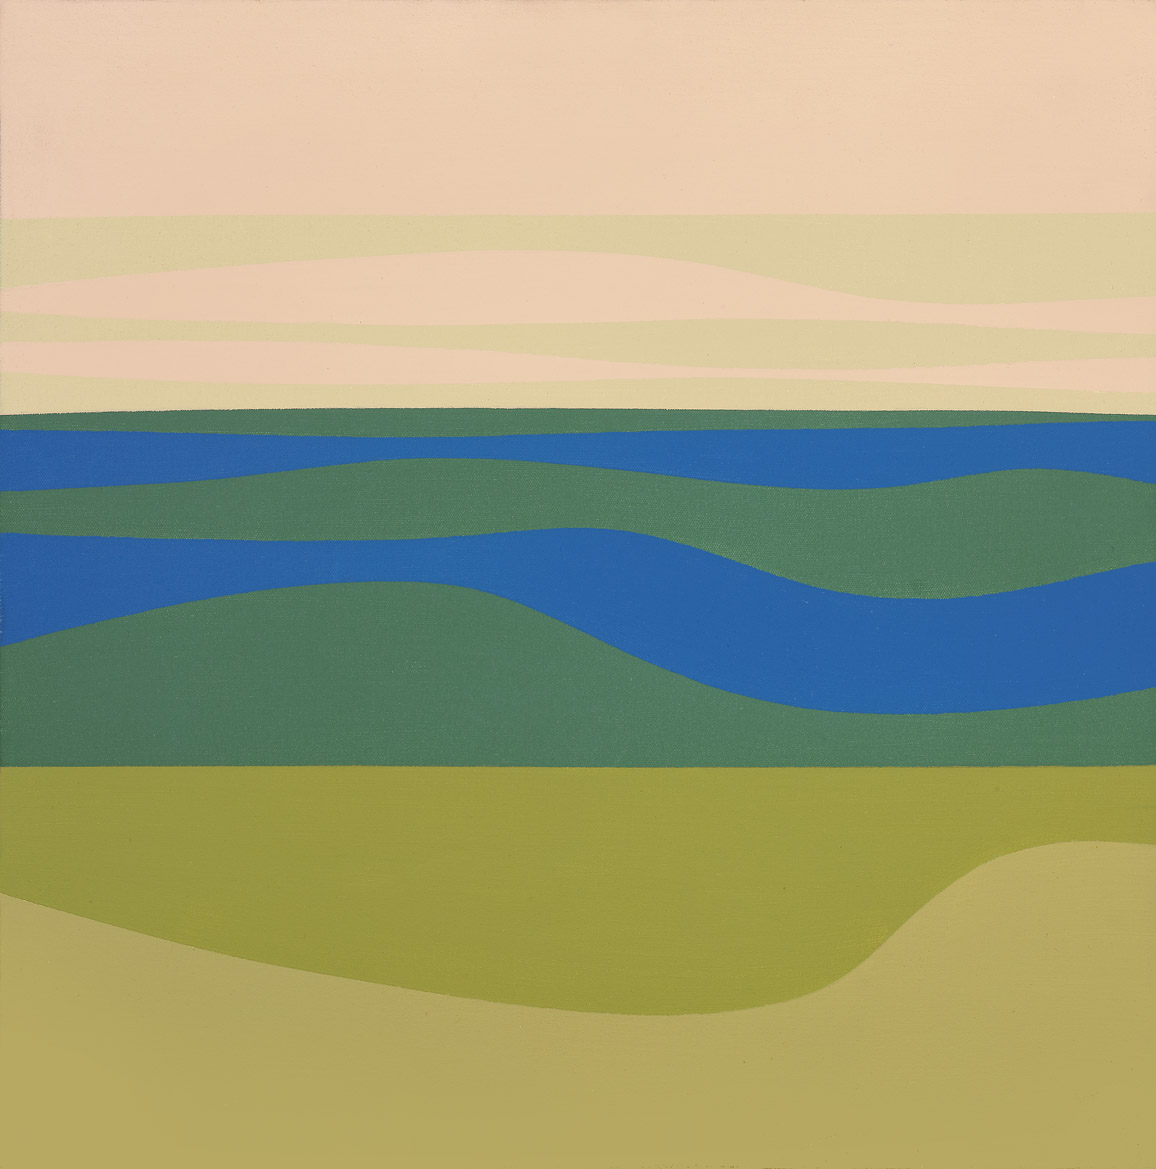 Ocean View , 1970  acrylic on canvas 20 x 20 inches; 50.8 x 50.8 centimeters